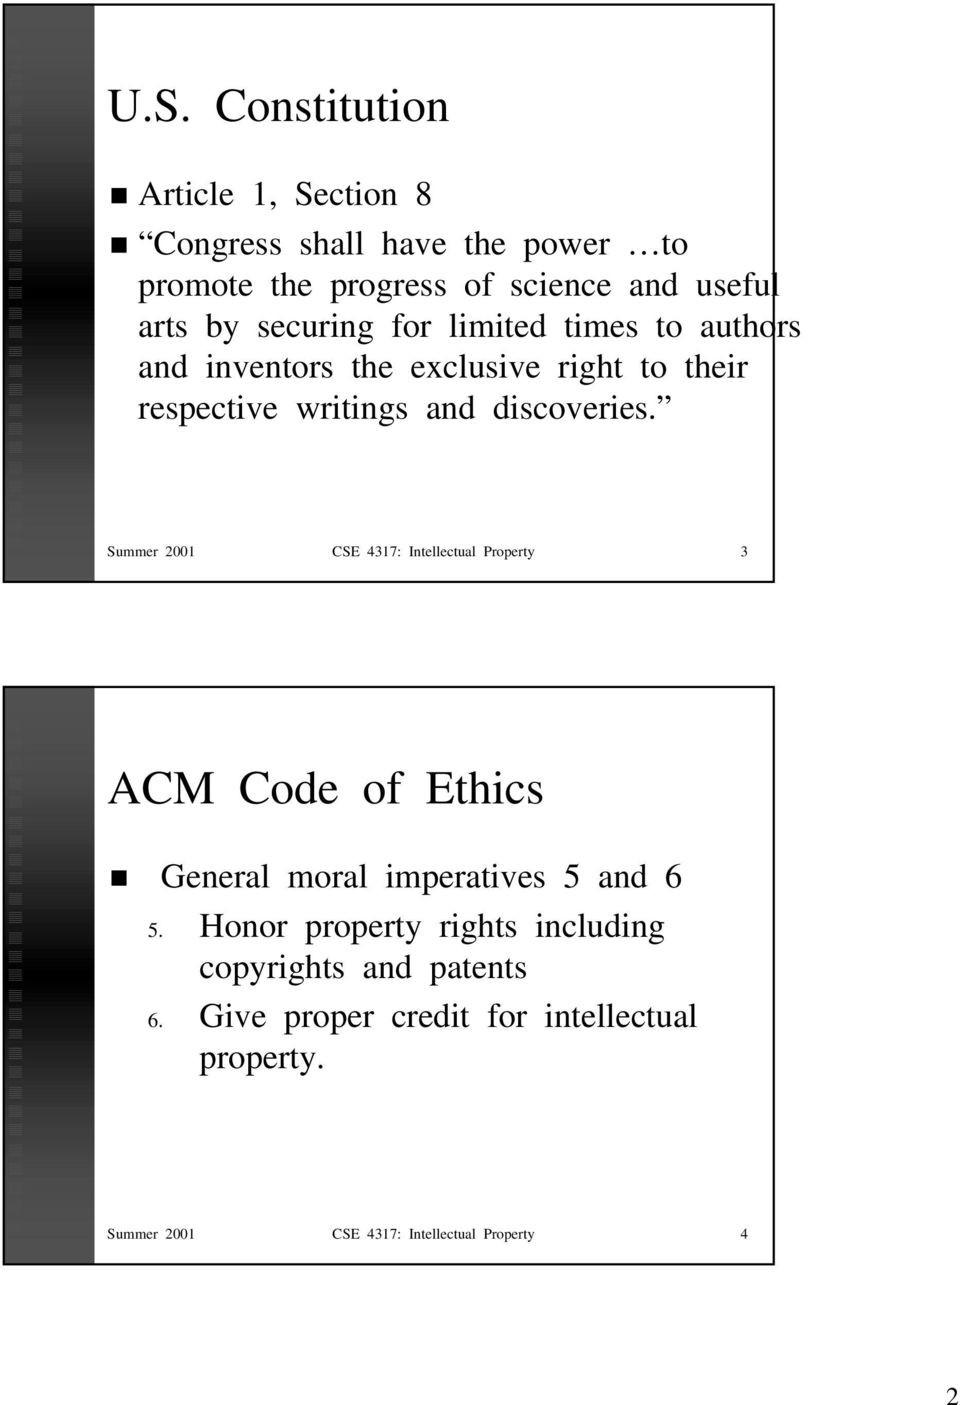 Summer 2001 CSE 4317: Intellectual Property 3 ACM Code of Ethics General moral imperatives 5 and 6 5.